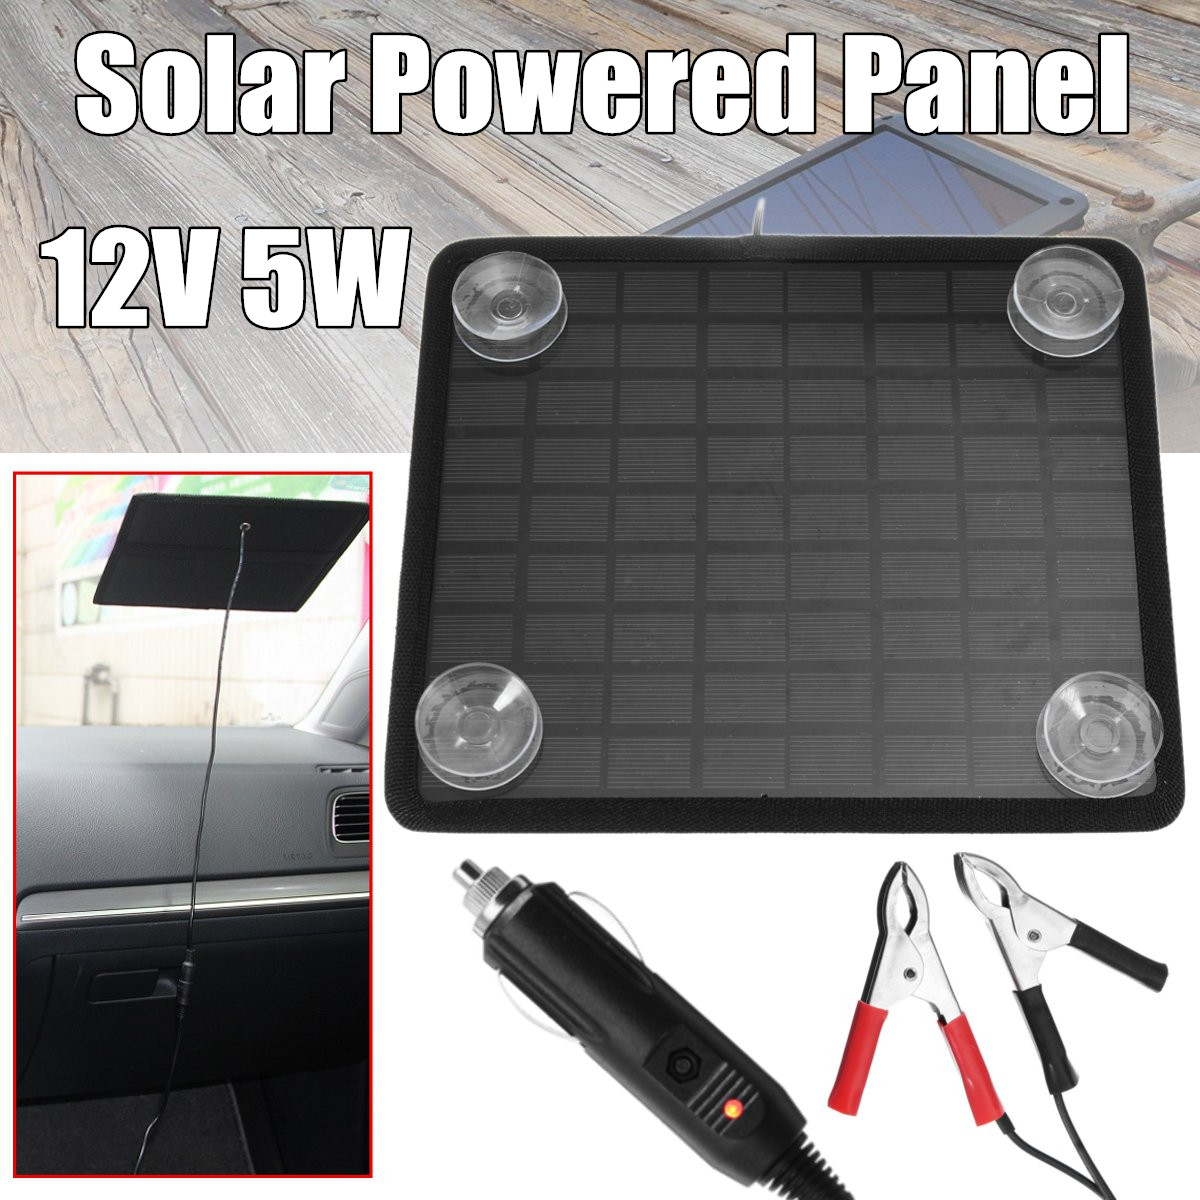 12V 5W Solar Powered Panel Battery Charger With Crocodile Clip Line For Outdoor Car Ship